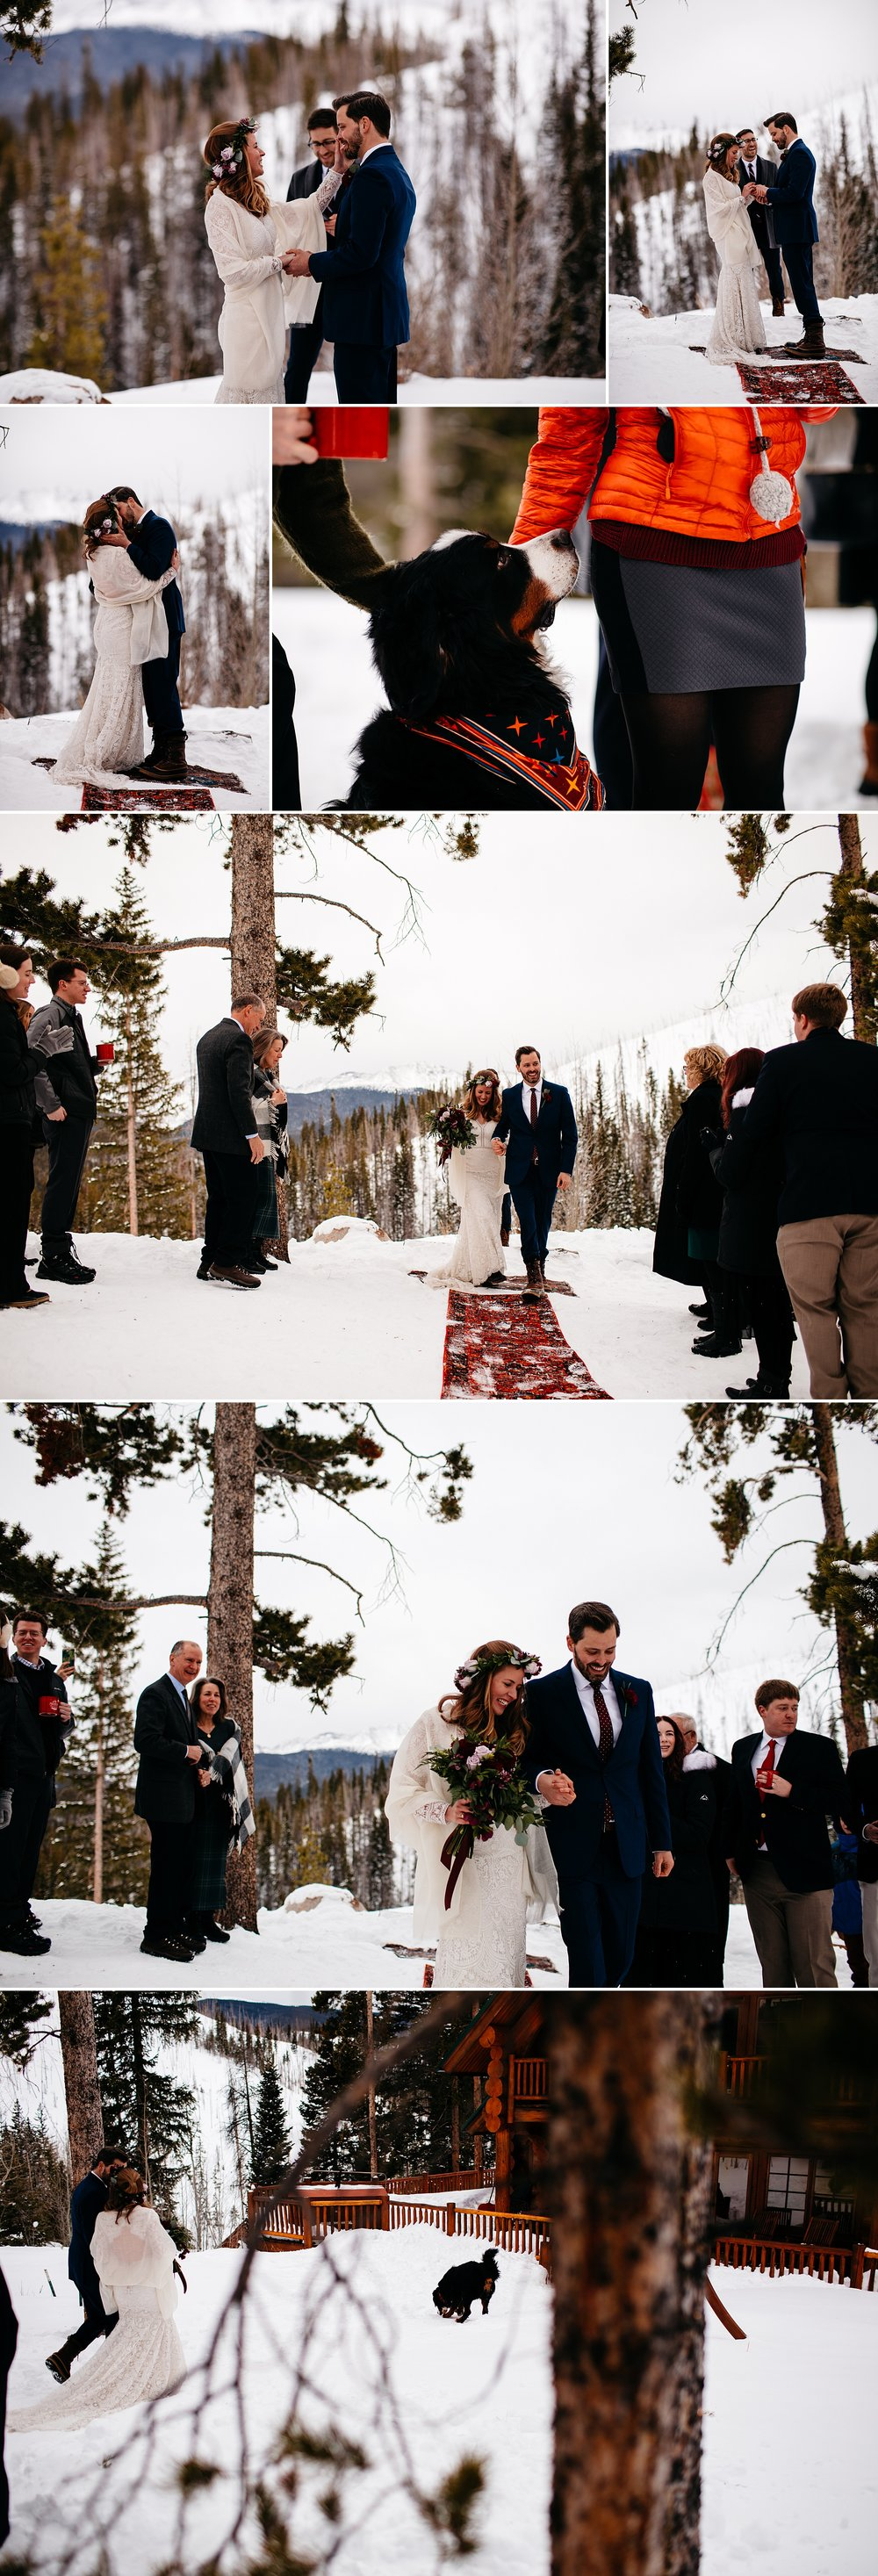 Intimate Mountain Airbnb Wedding in Colorado